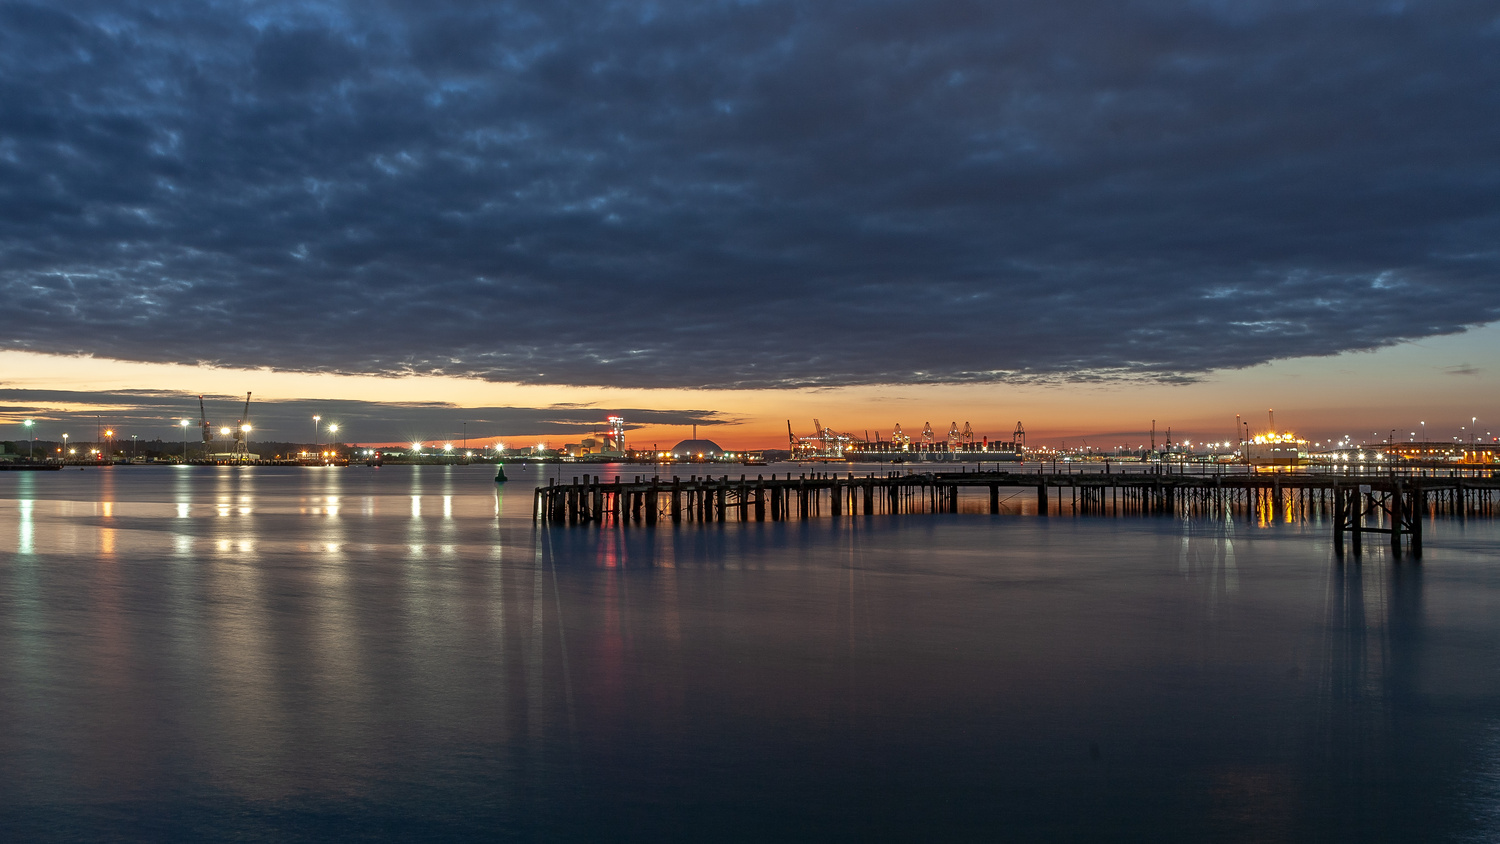 Sunset in the port of Southampton by Dorian Drozdowski